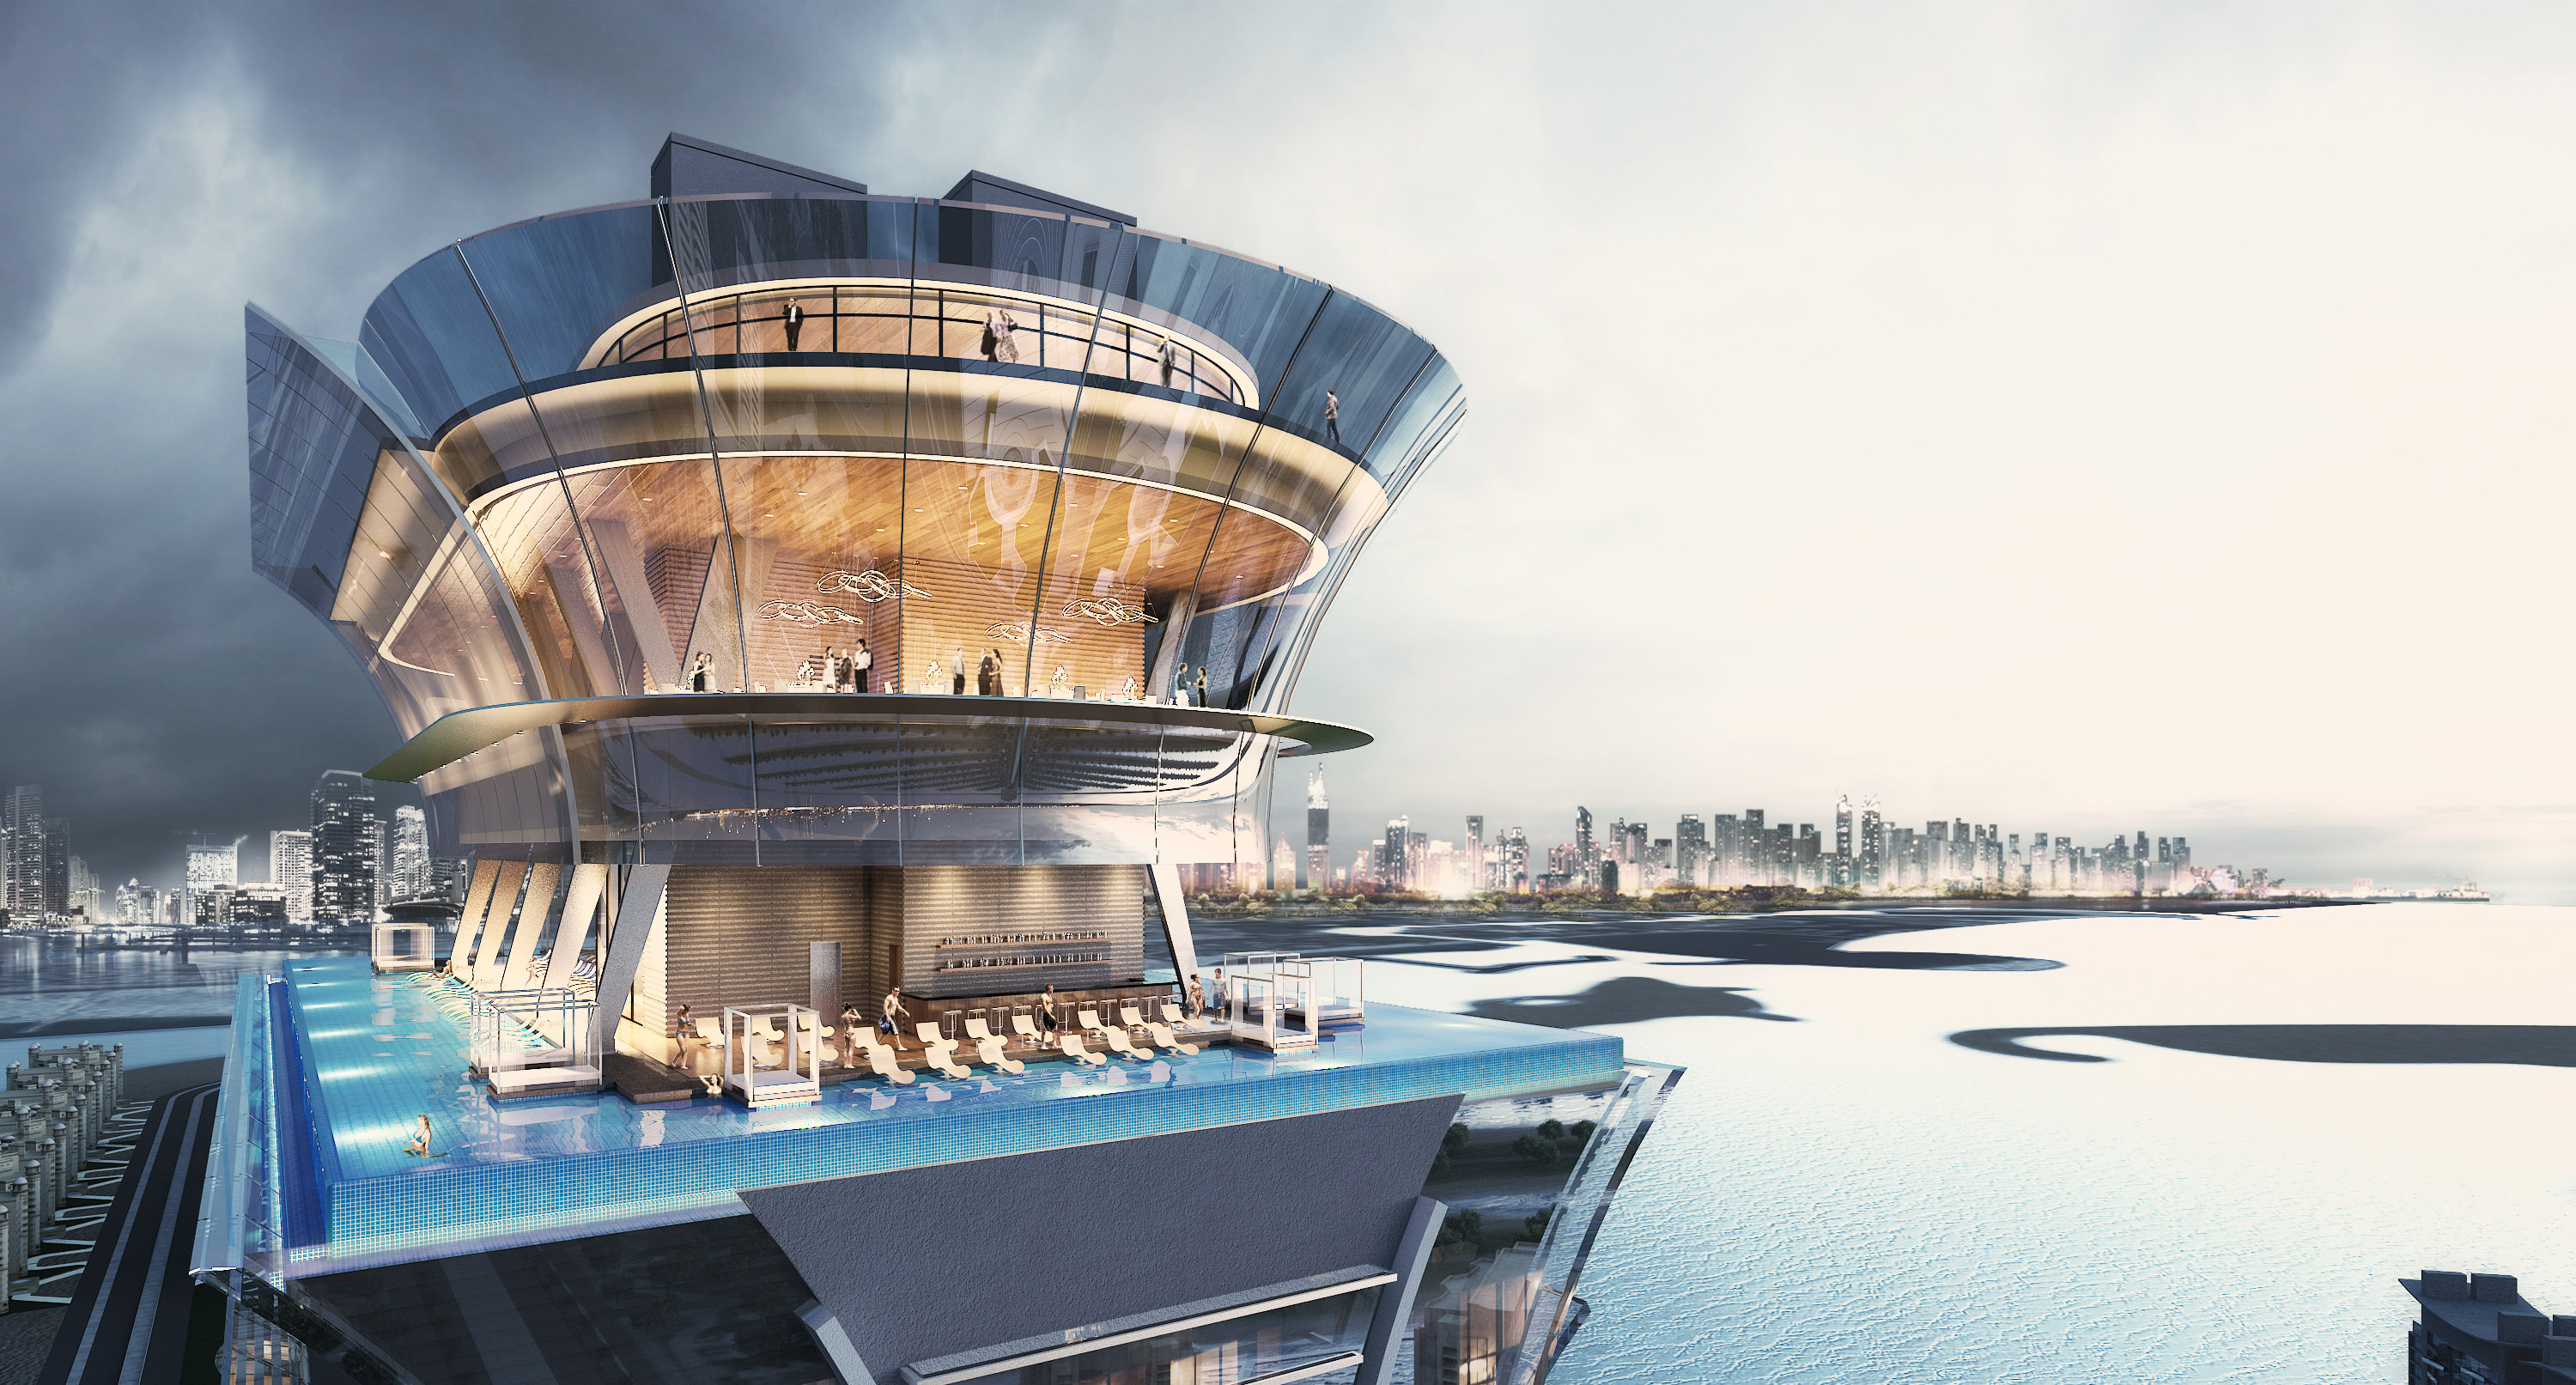 Hotel and residential floors complete at 52-storey luxury complex on Dubai's Palm Jumeirah